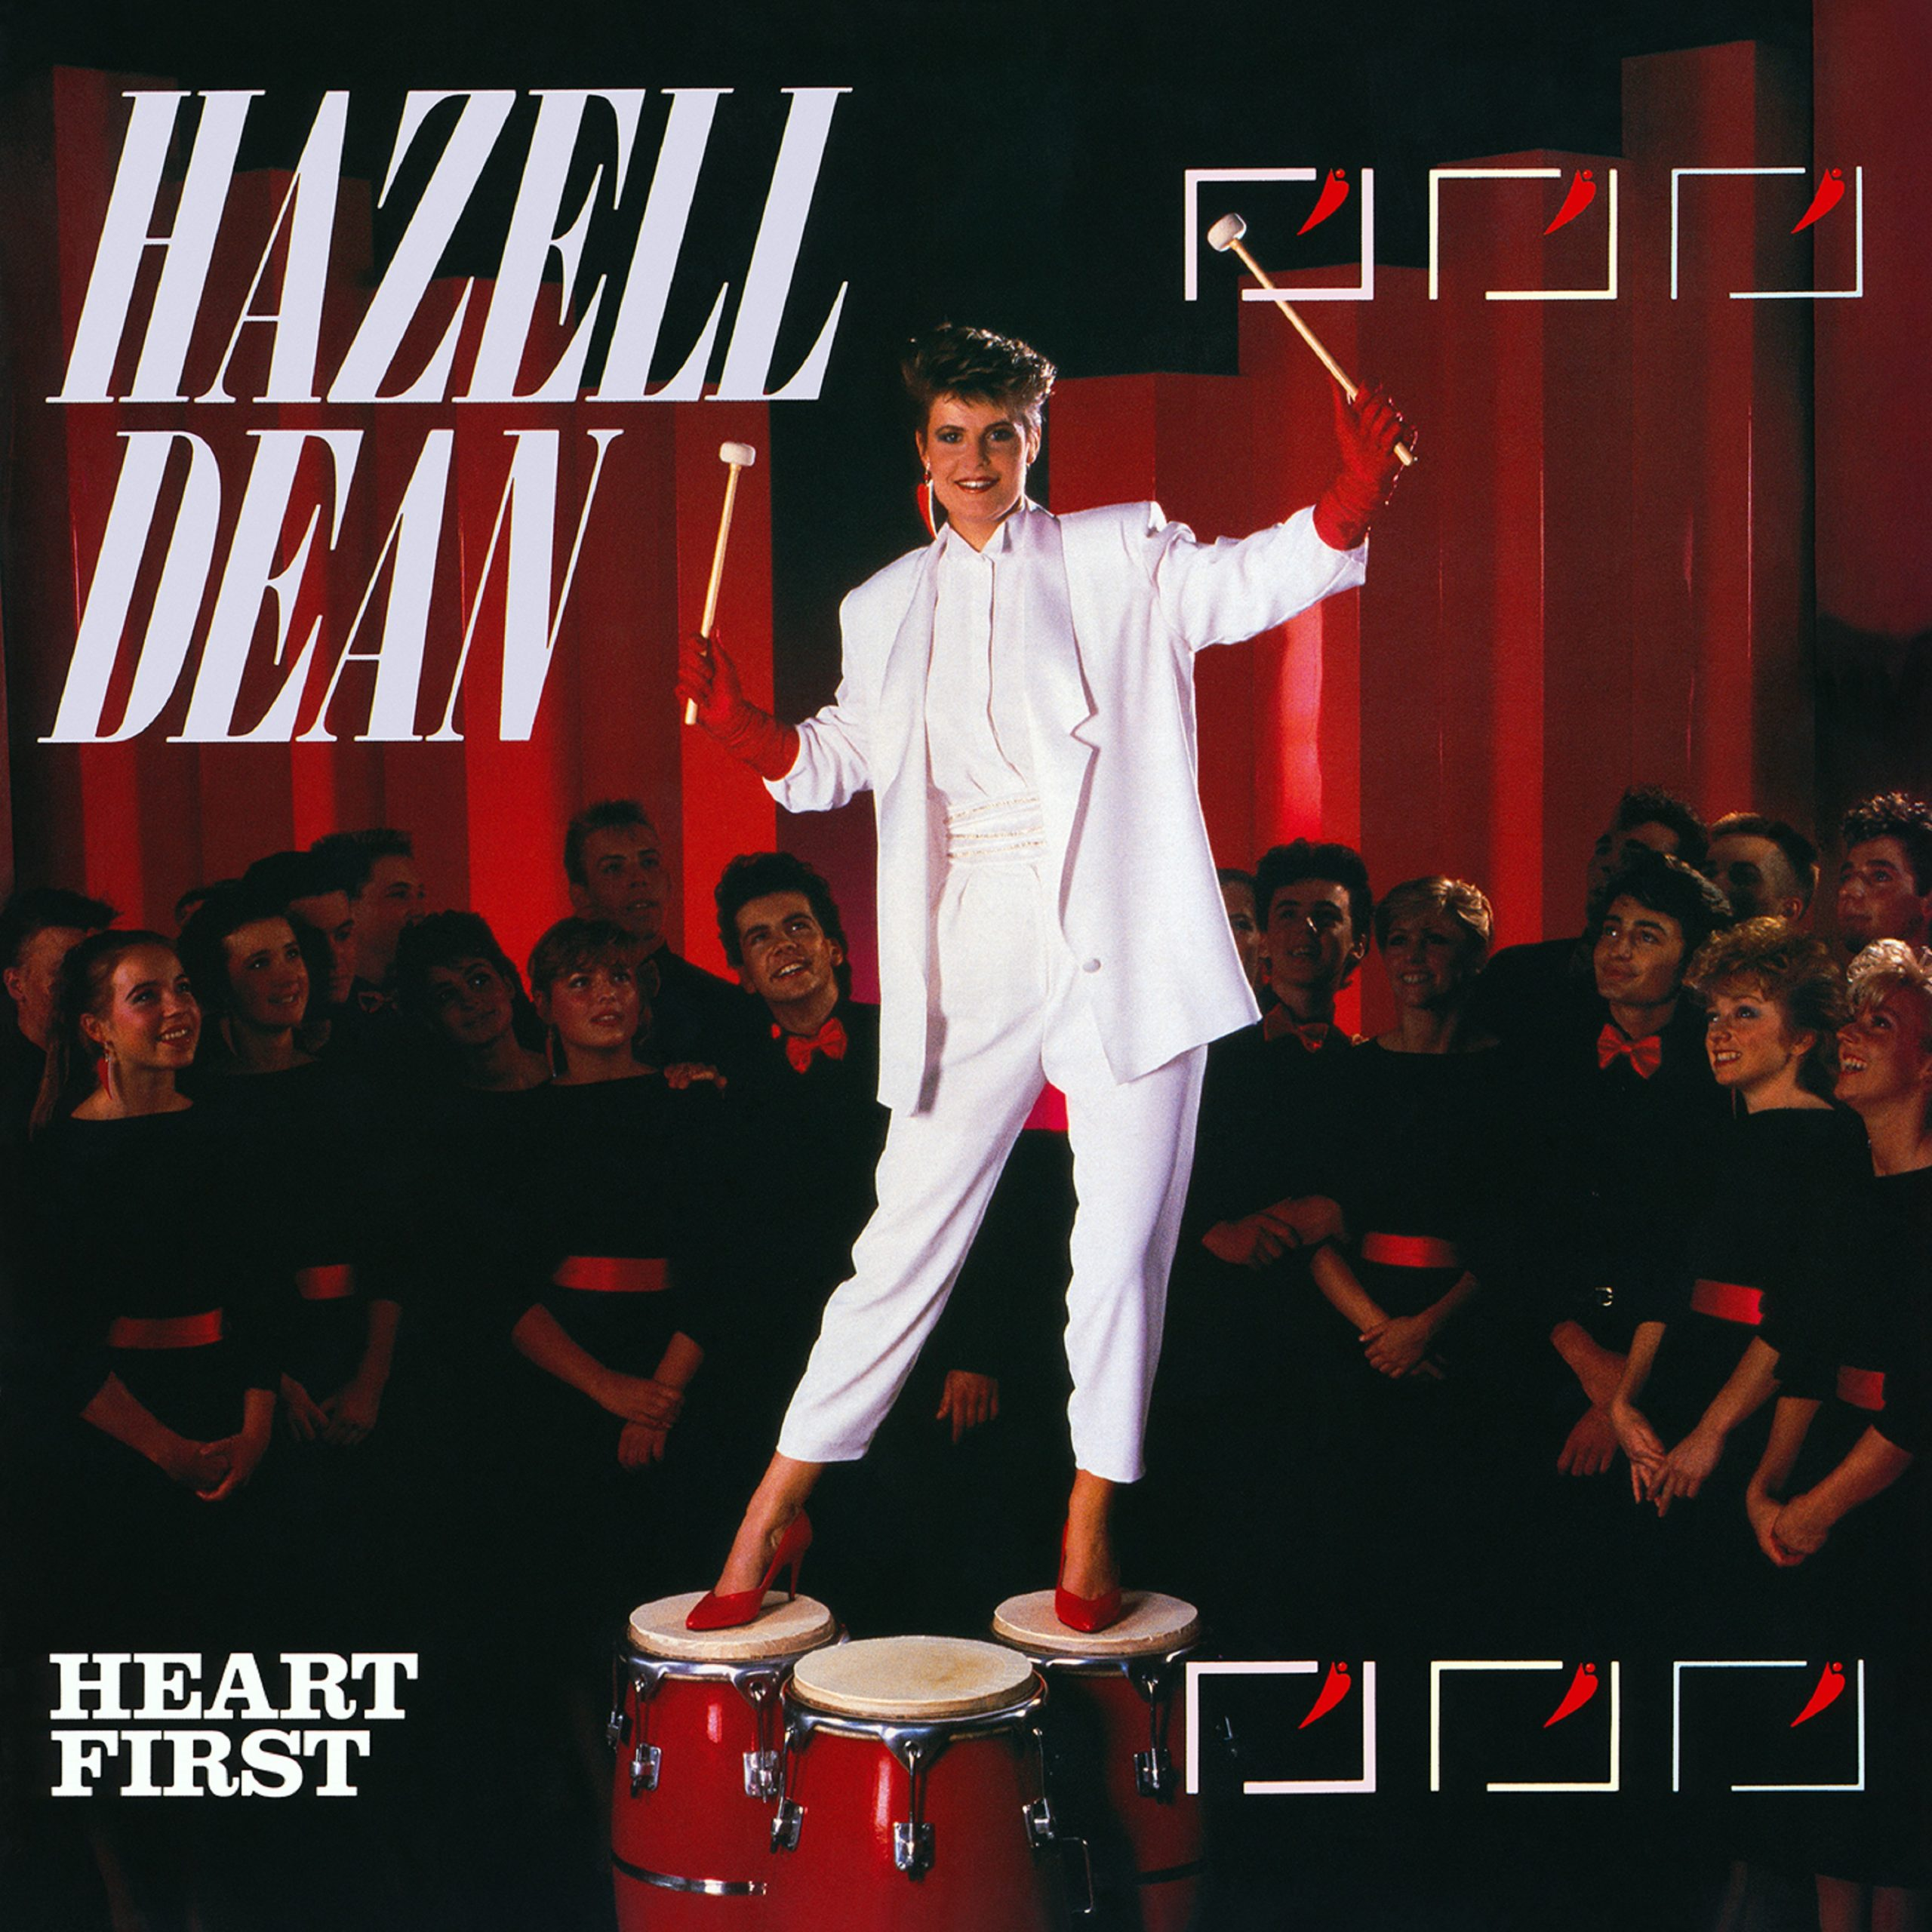 Hazell Dean: Heart First